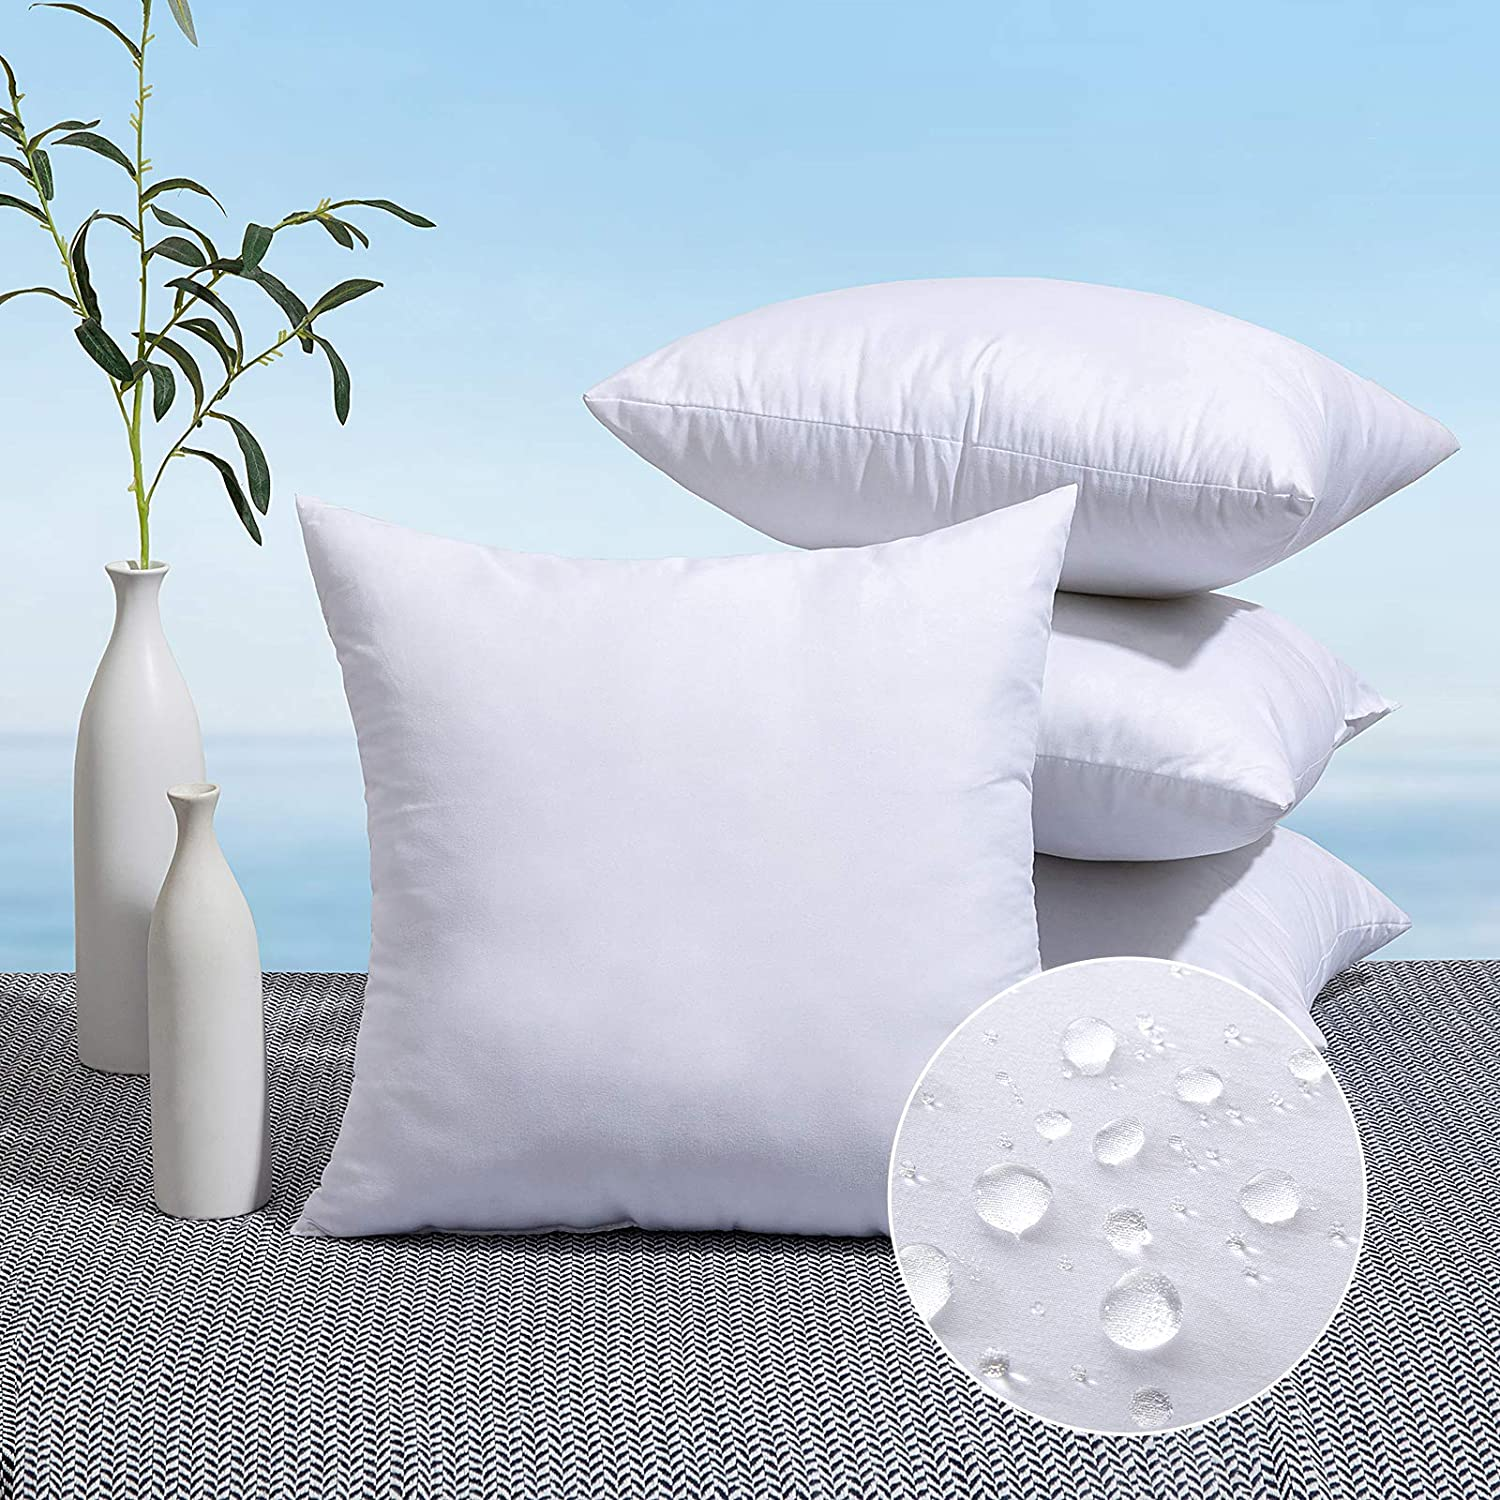 MIULEE Pack of 4 Outdoor Pillow Inserts Waterproof 18x18 Throw Pillow Inserts Premium Hypoallergenic Pillow Stuffer Sham Square for Patio Furniture